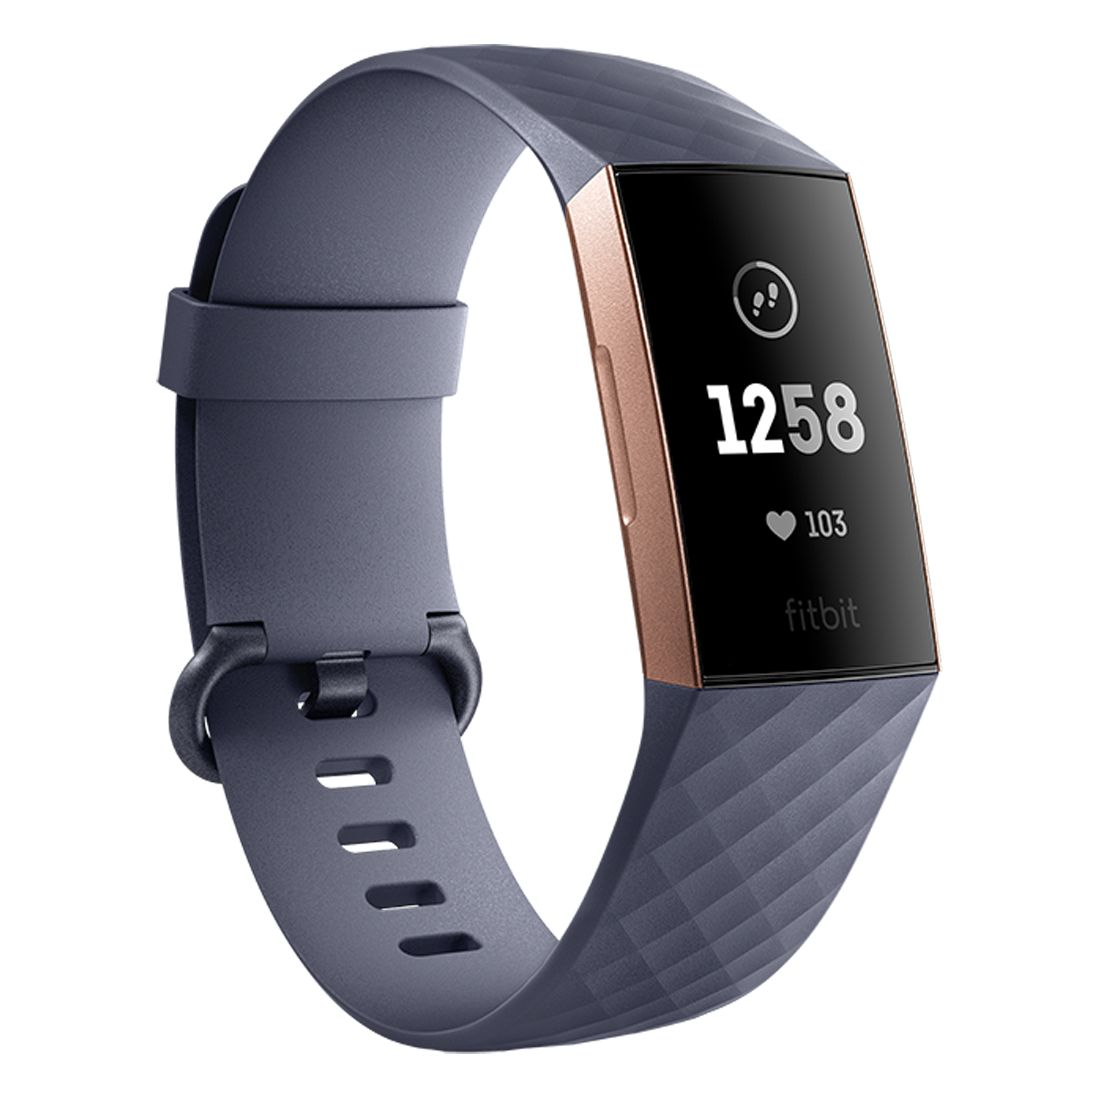 Fitbit Charge 3 Advanced Health and Fitness Tracker - Blue Grey/Rose Gold Aluminium